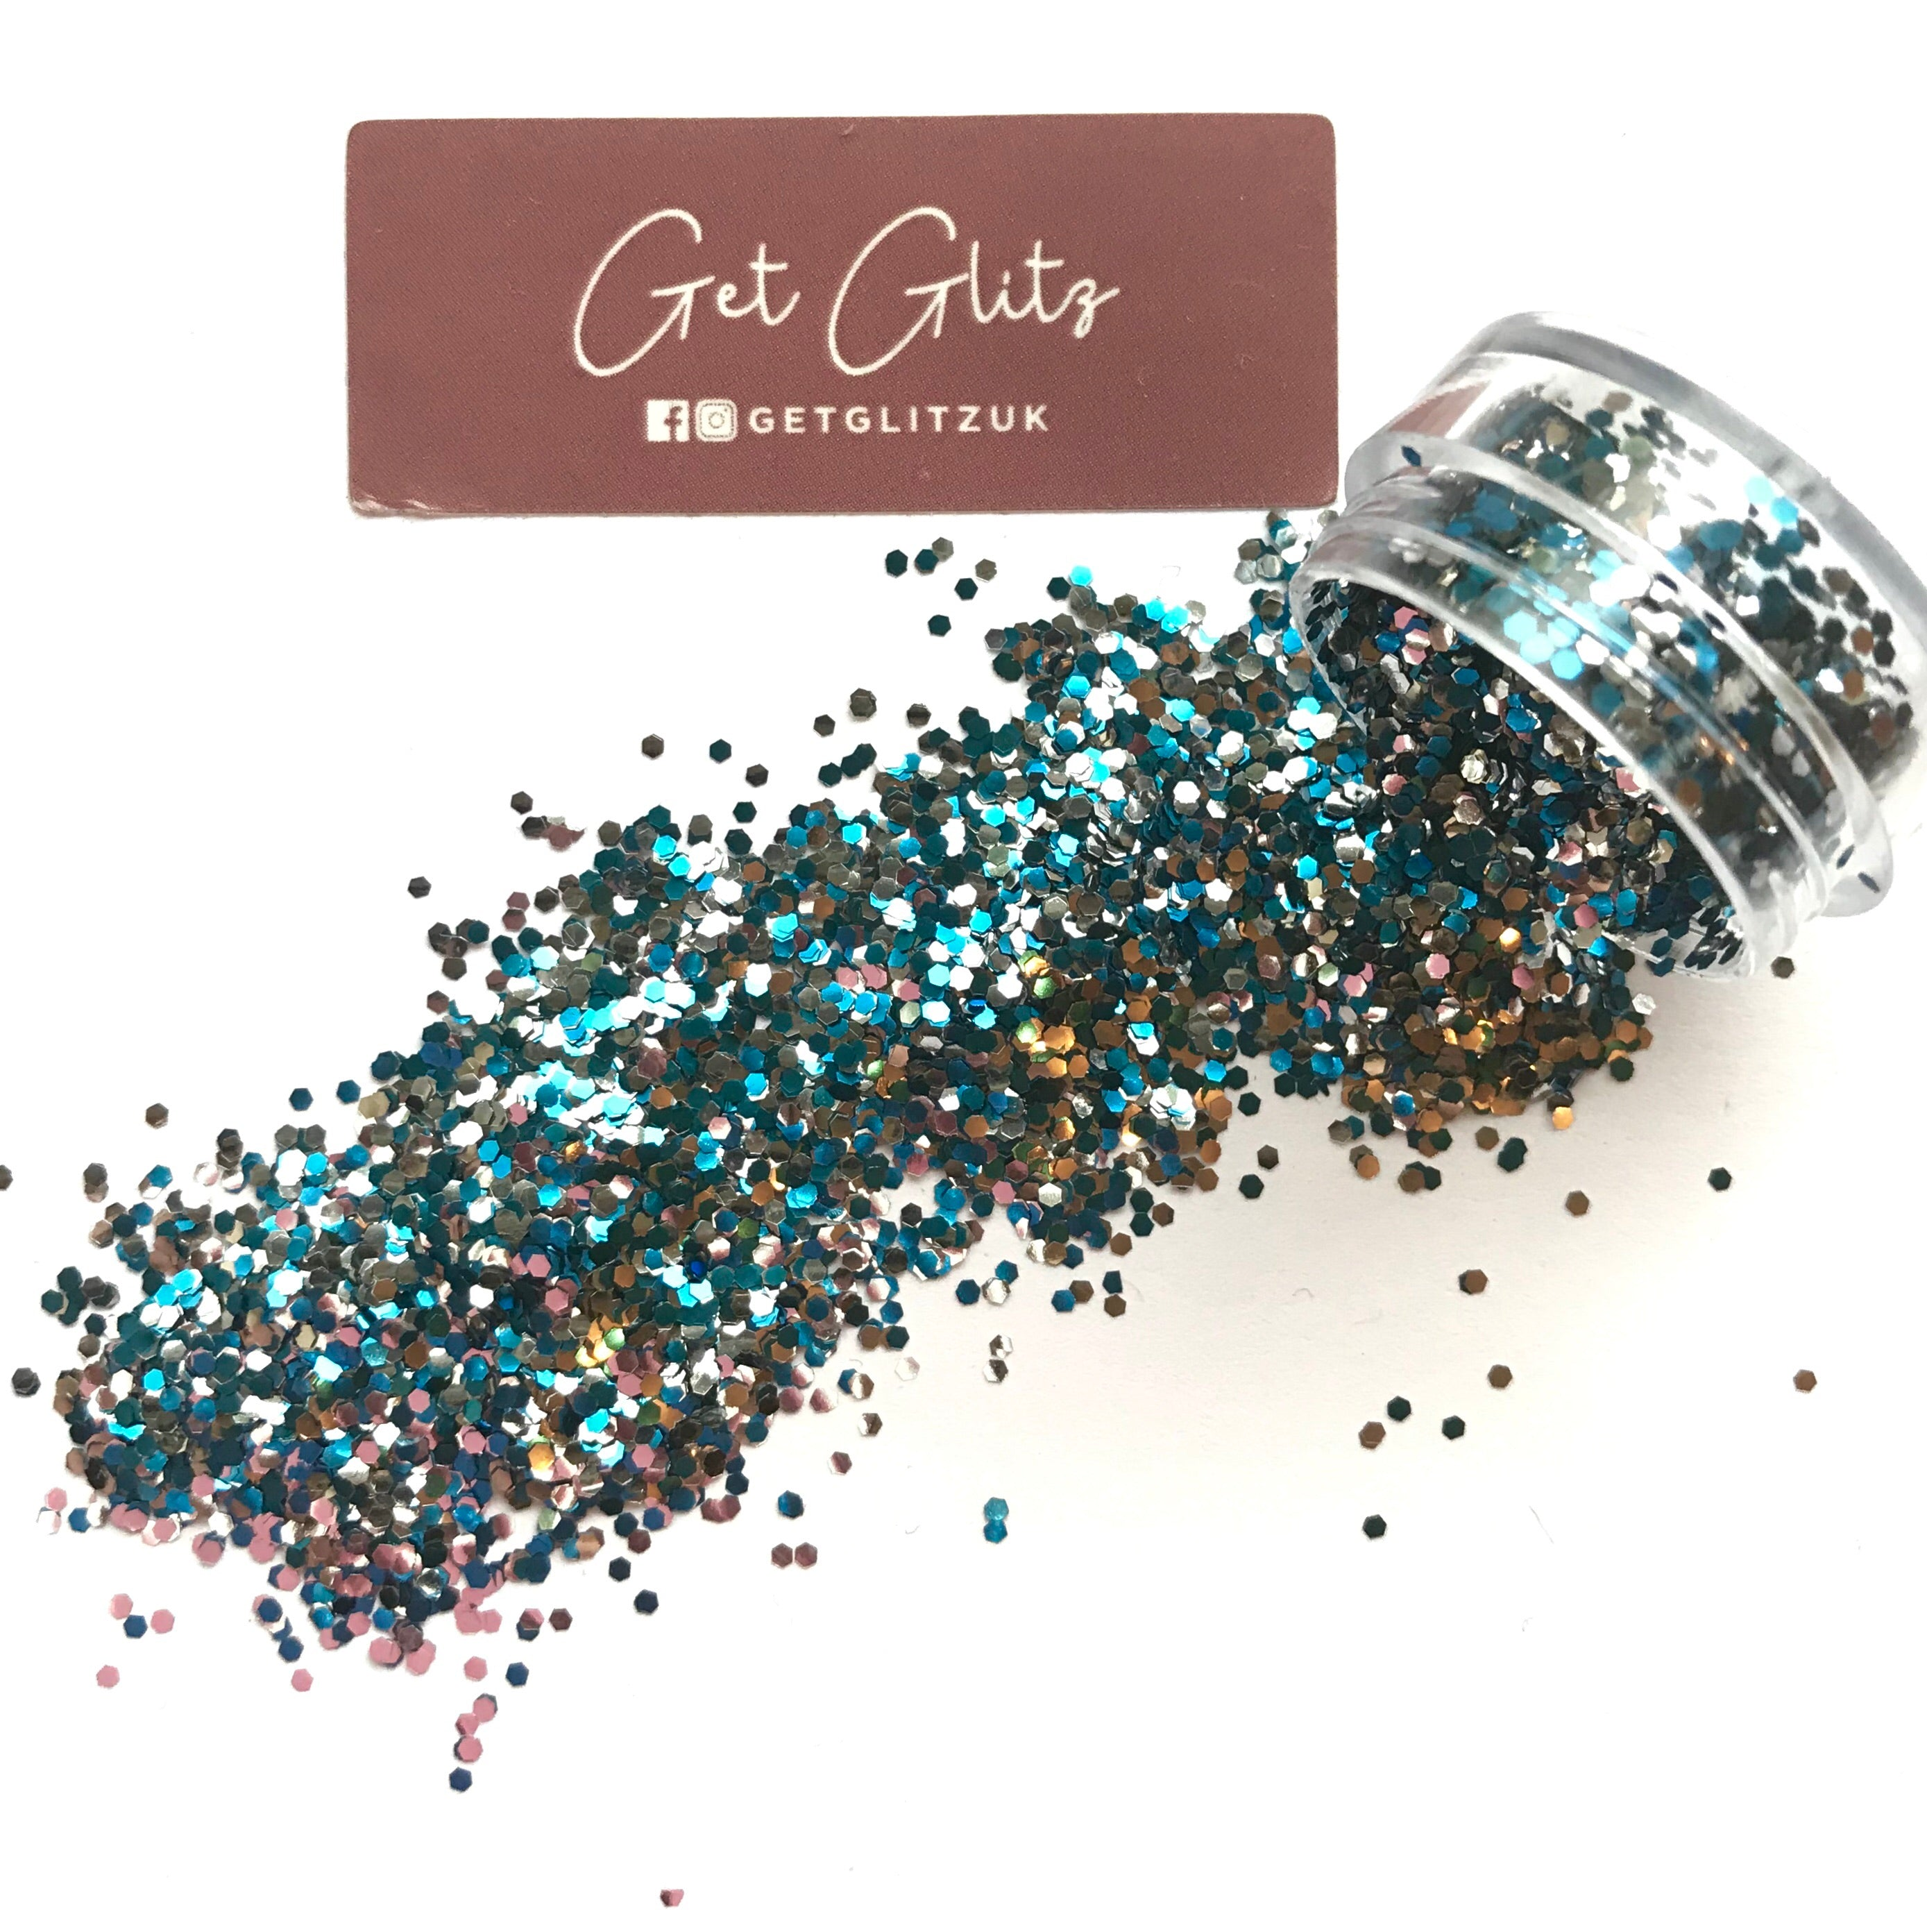 Blue lagoon biodegradable - Chunky Glitter UK